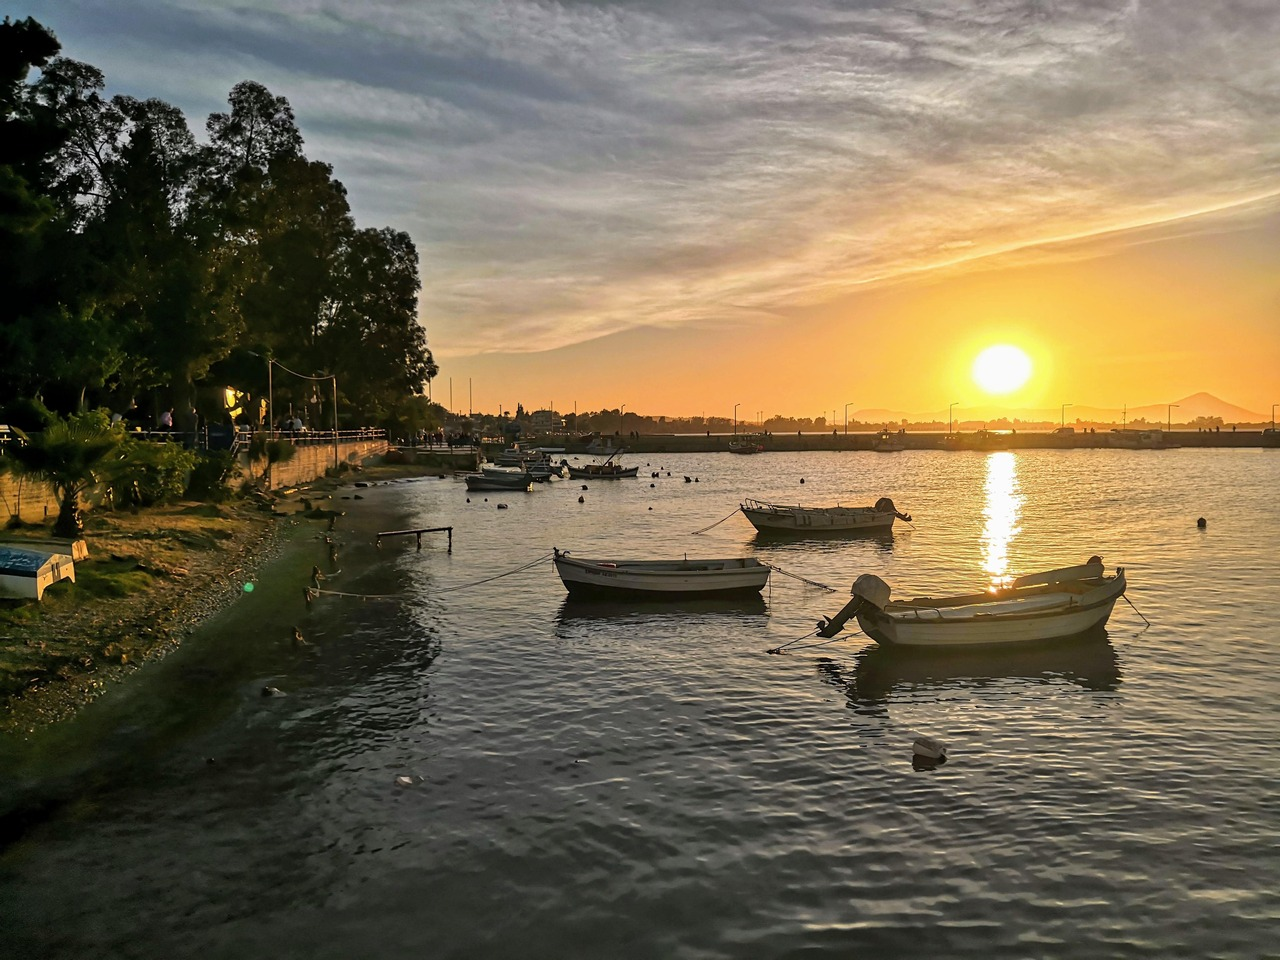 Sunset view with parked fishing boats